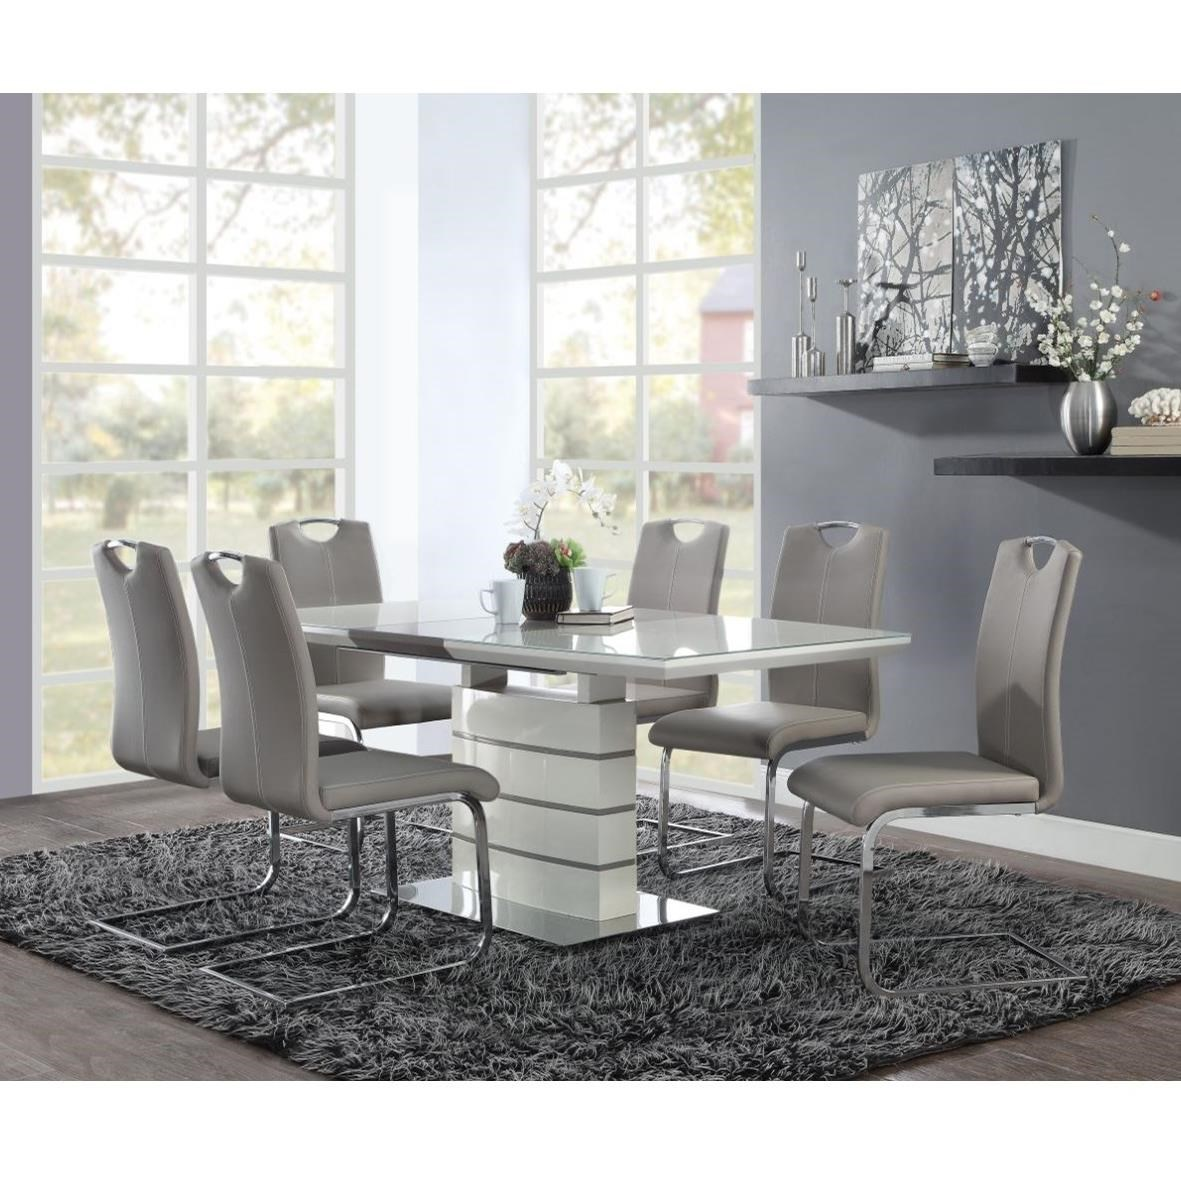 Glissand 7-Piece Table and Chair Set by Homelegance at Beck's Furniture